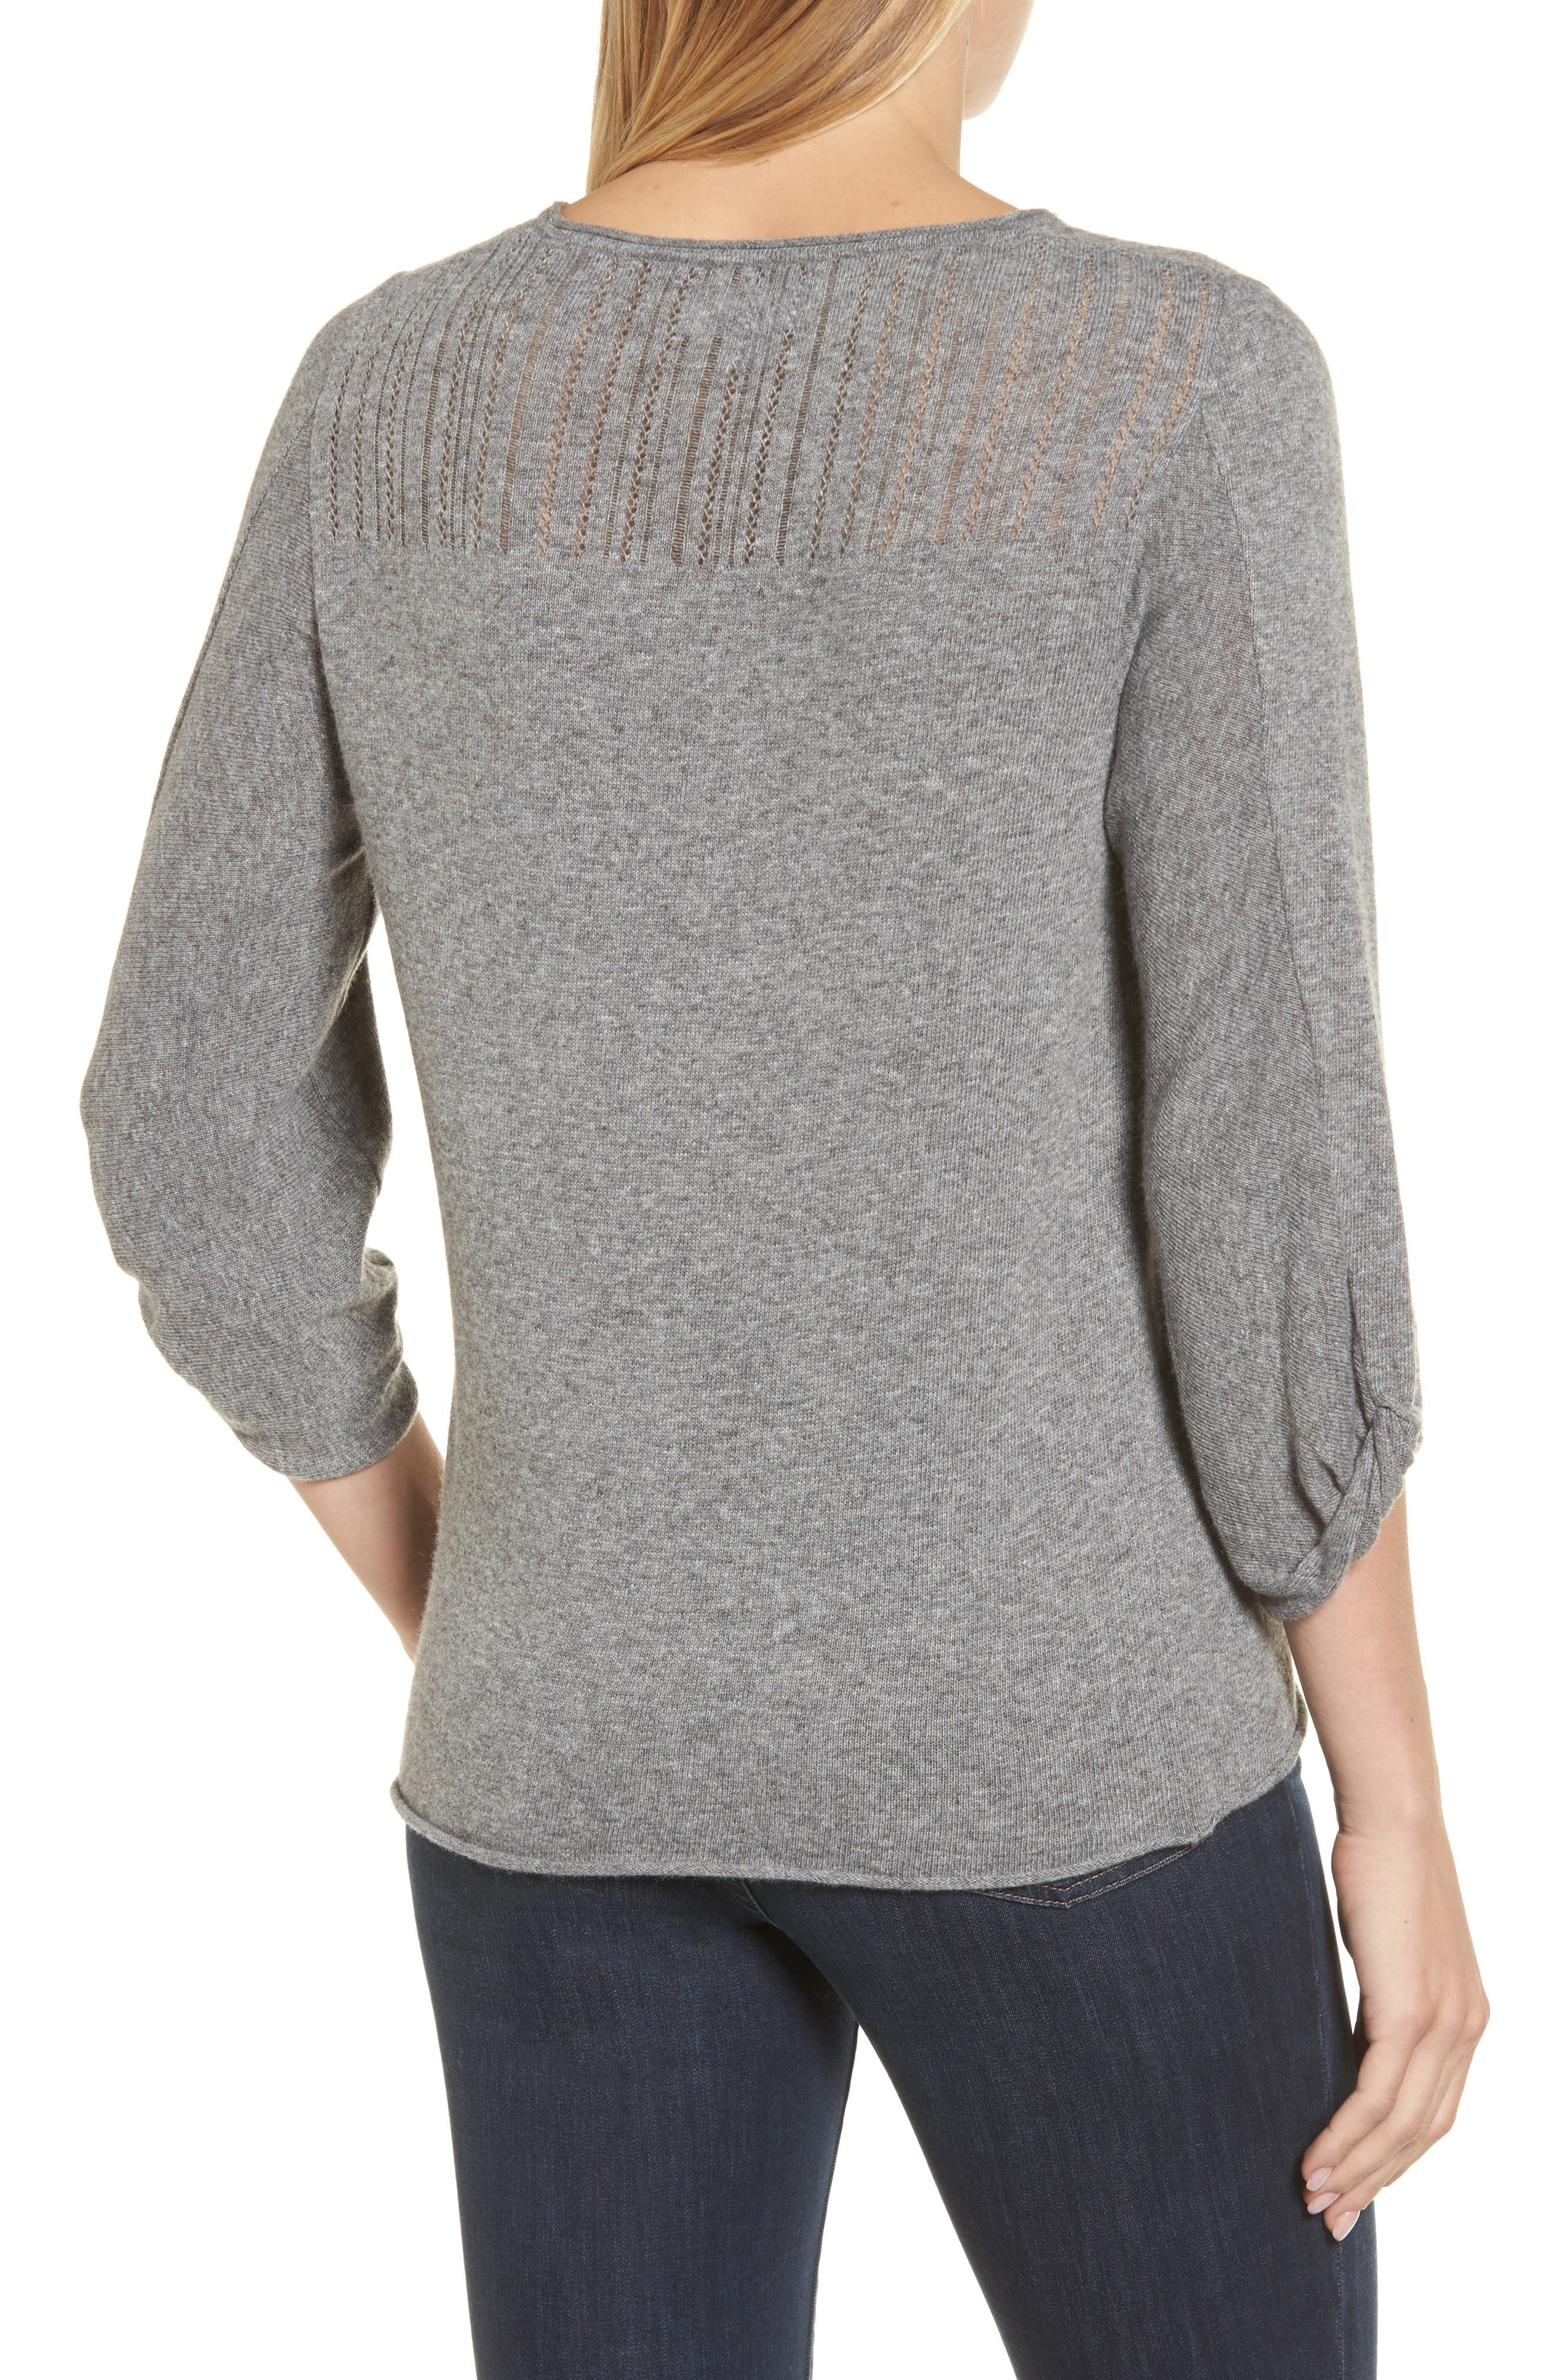 Pointelle Yoke Sweater,                             Alternate thumbnail 2, color,                             Heather Grey